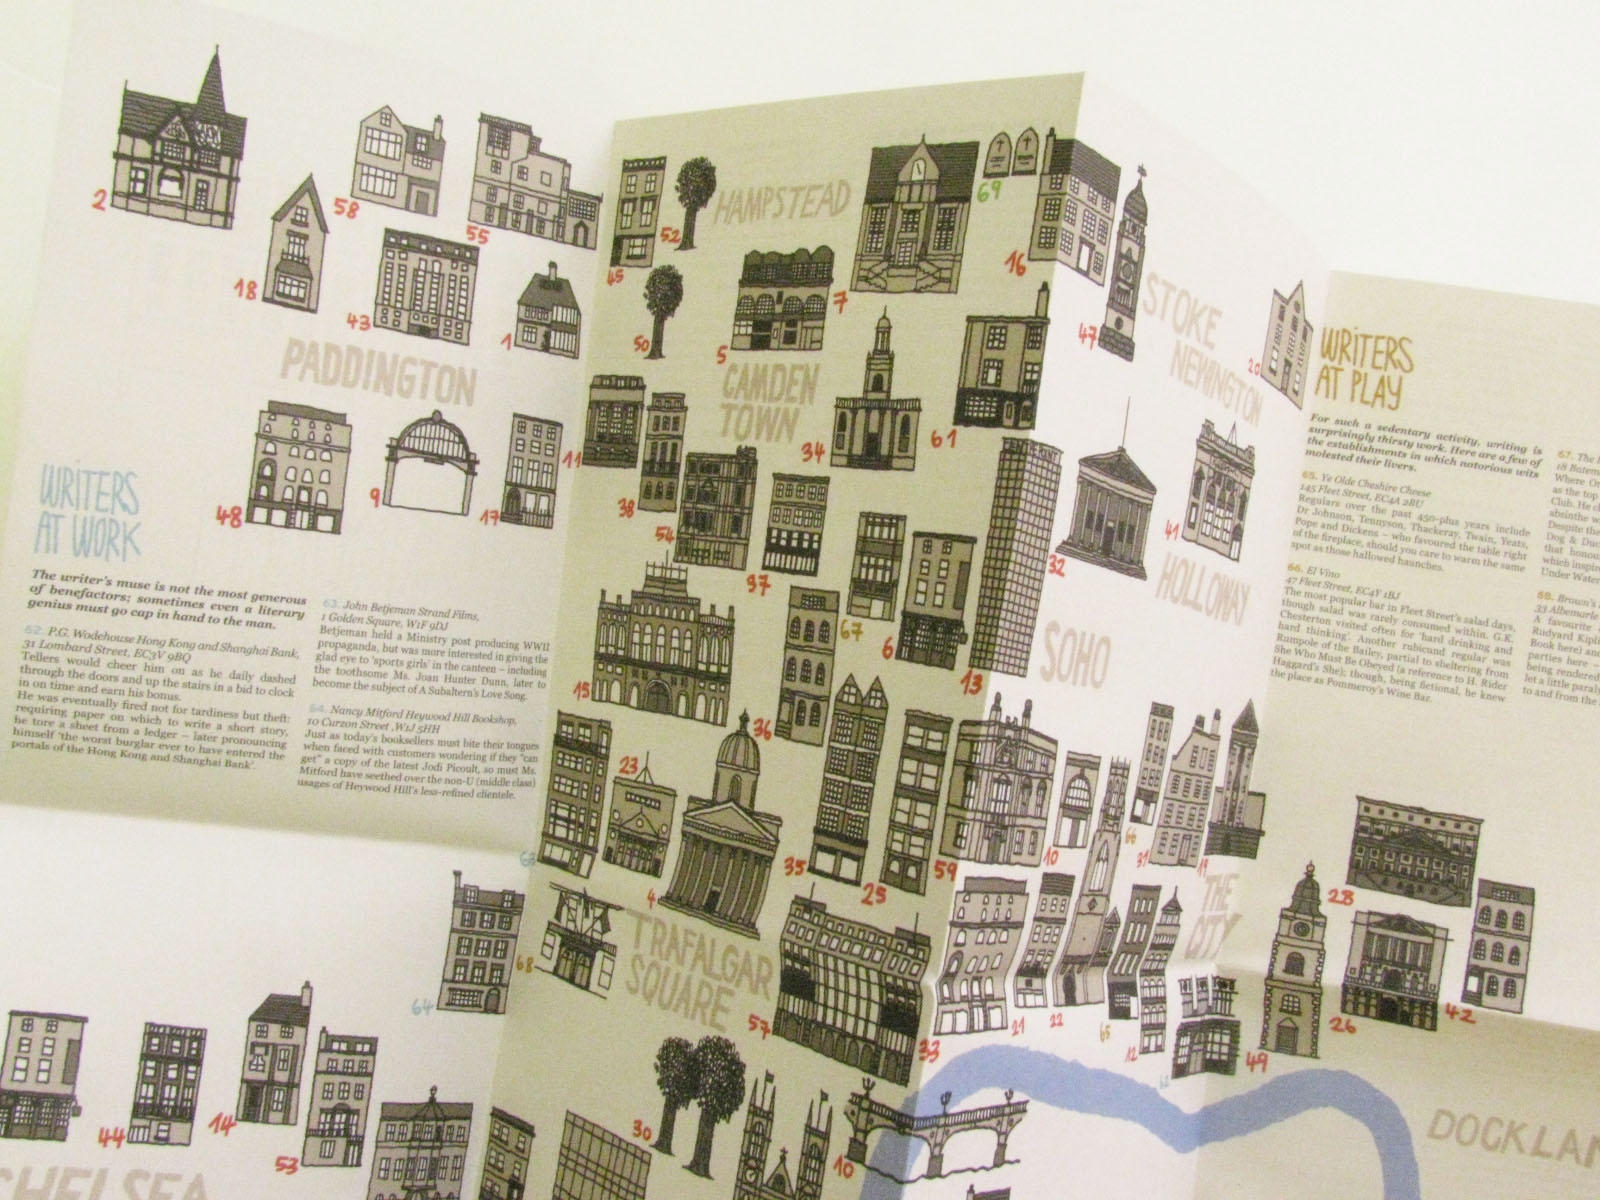 lik   neon     JUST IN    ILLUSTRATED POCKET CITY GUIDE MAPS FROM      Writing London  map  designed   illustrated by Thibaud Heren         MID SUMMER SALE CONTINUES IN STORE